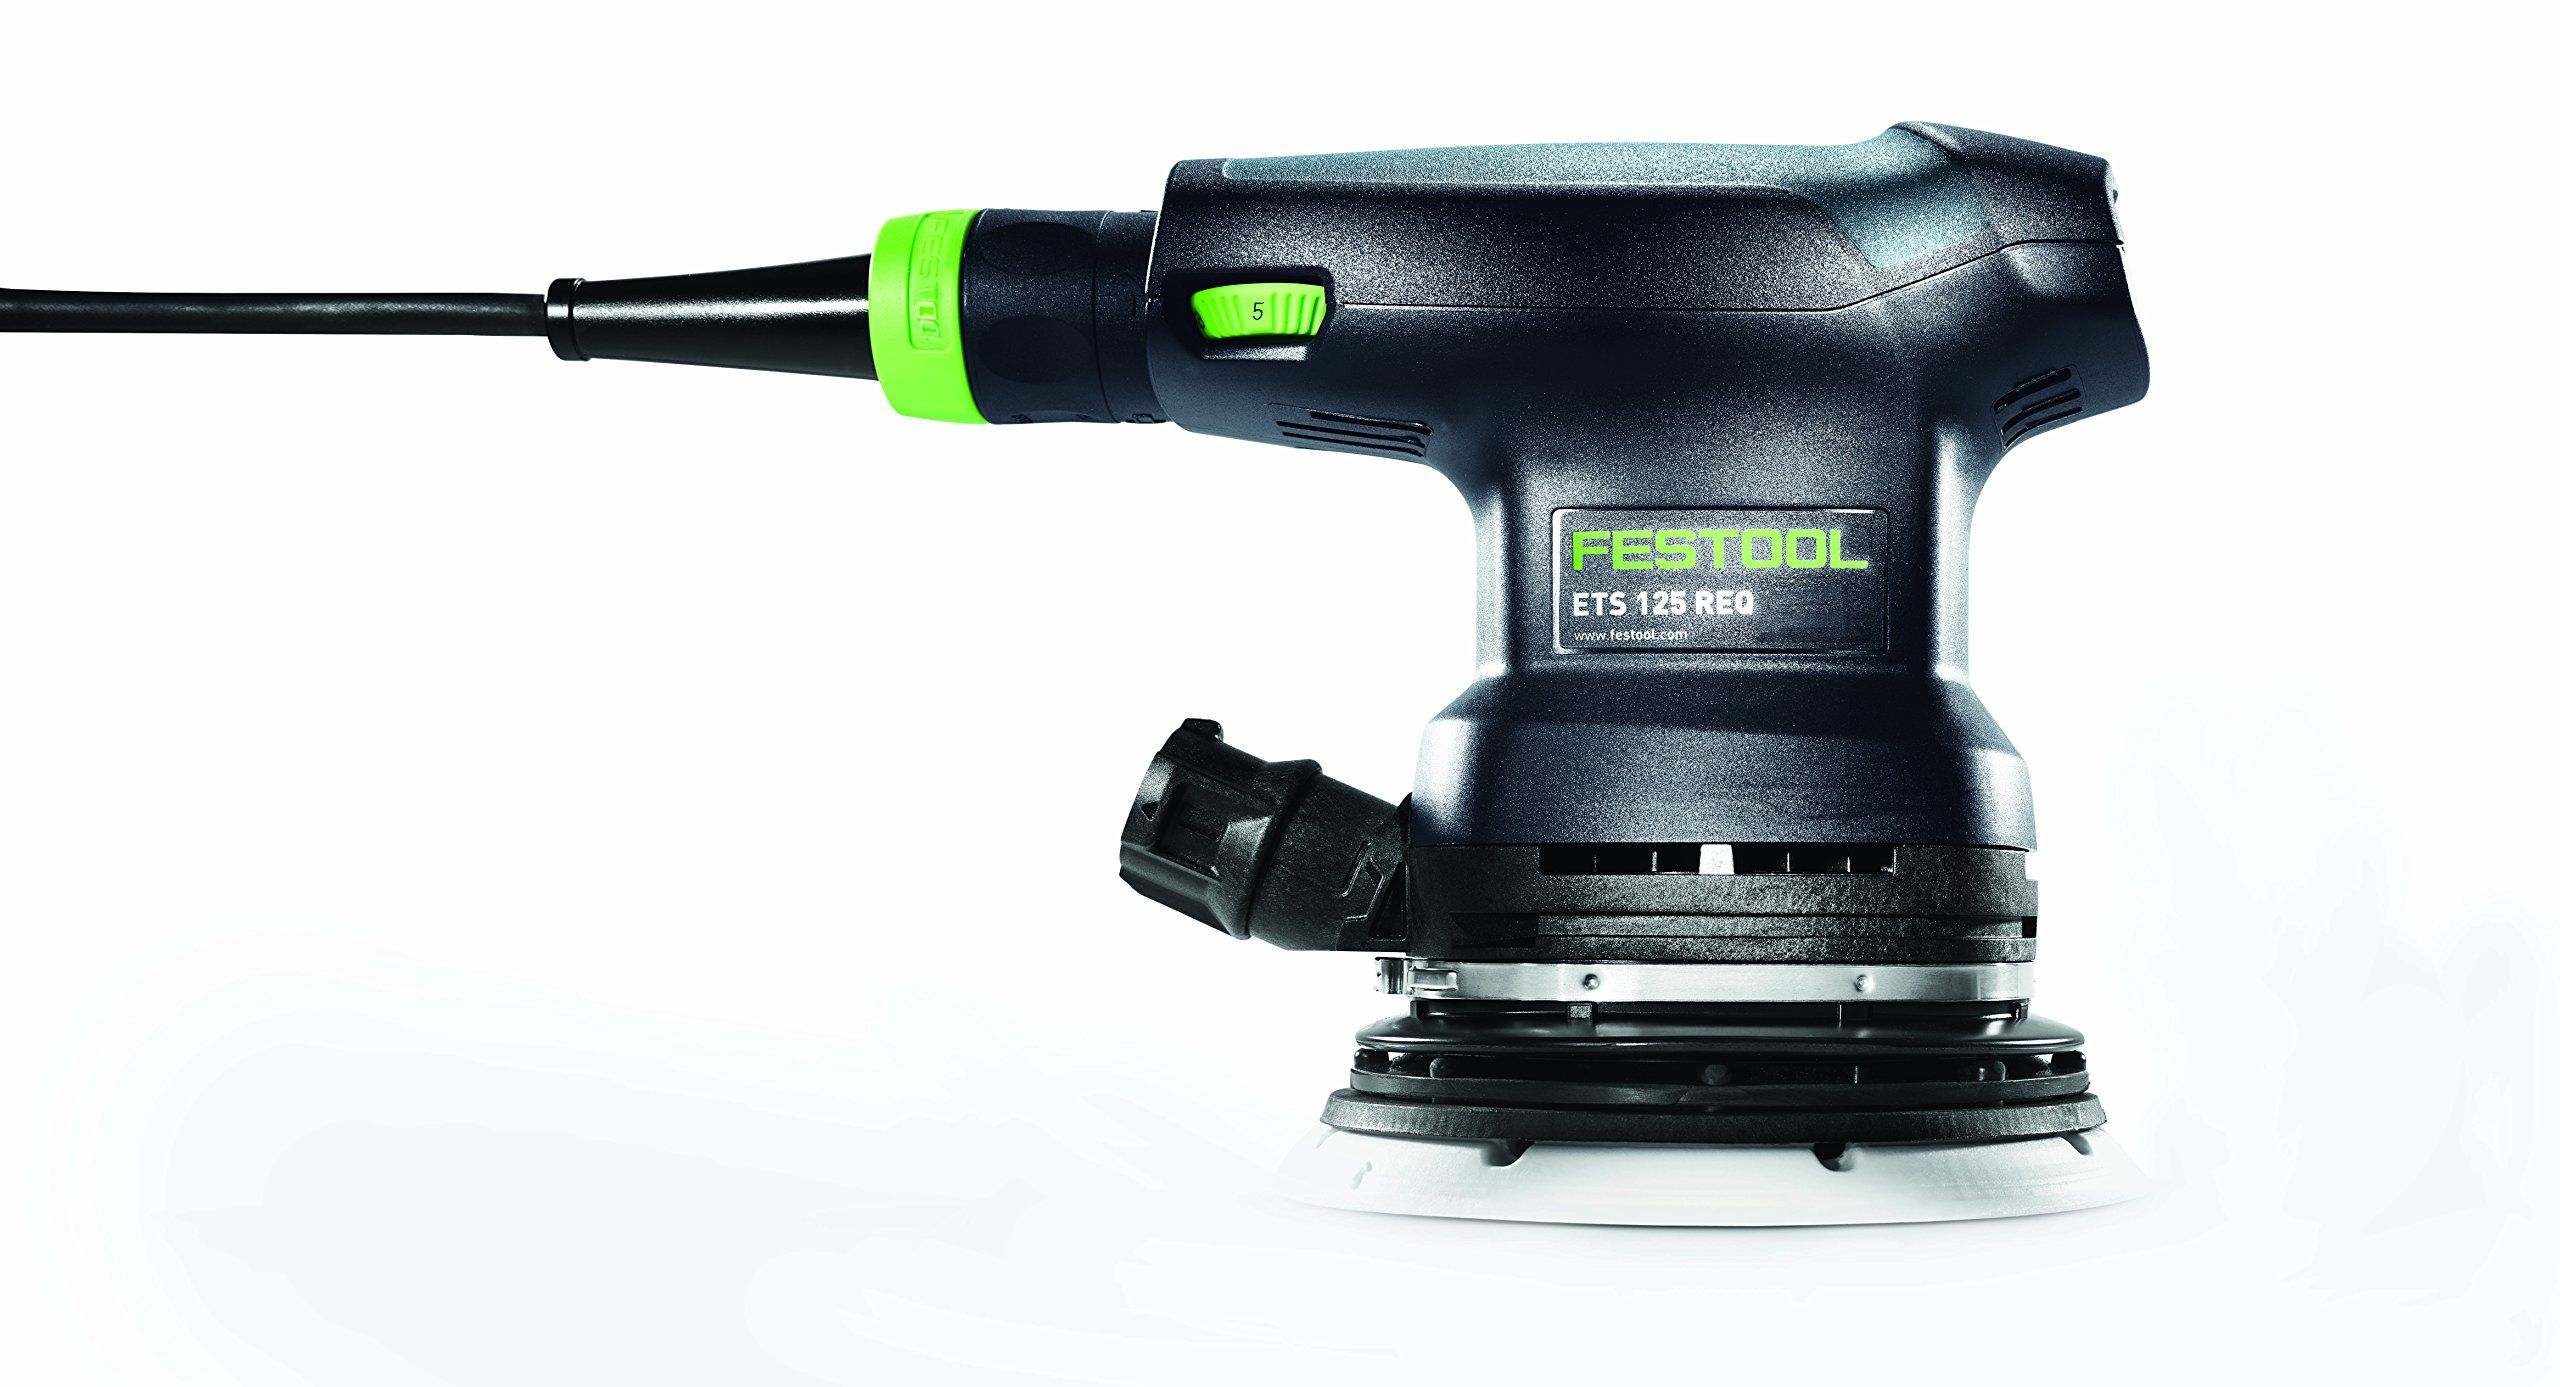 Festool 574993 Random Orbital Sander Ets 125 Reqplus Click Image For Even More Details This Is A Table Saw Best Random Orbital Sander Craftsman Table Saw